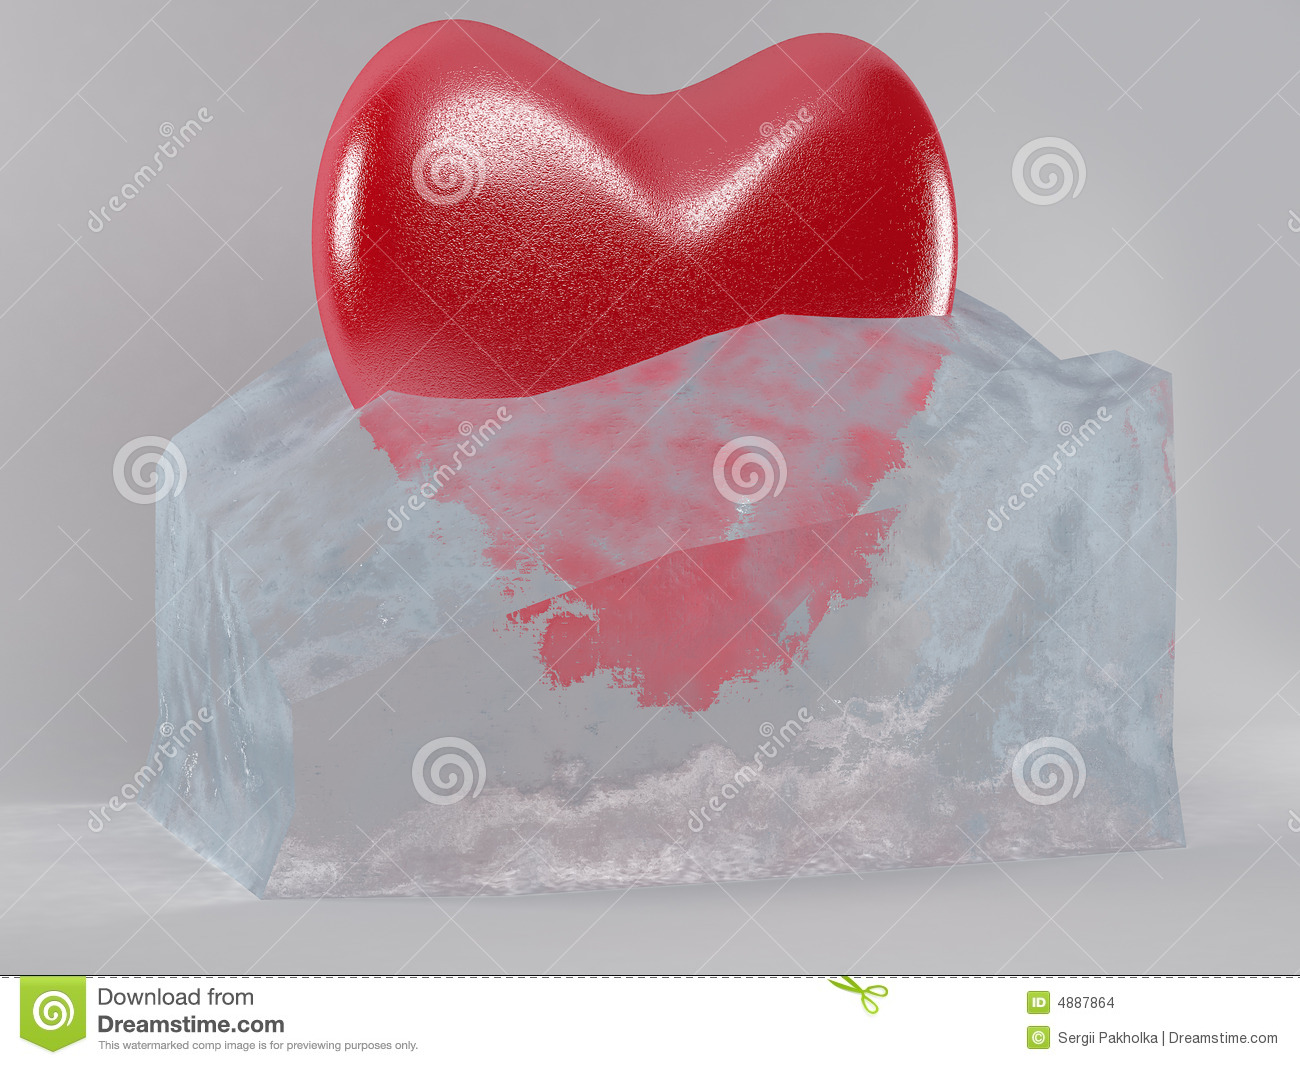 Download The heart in the ice cube stock illustration. Illustration of concepts - 4887864